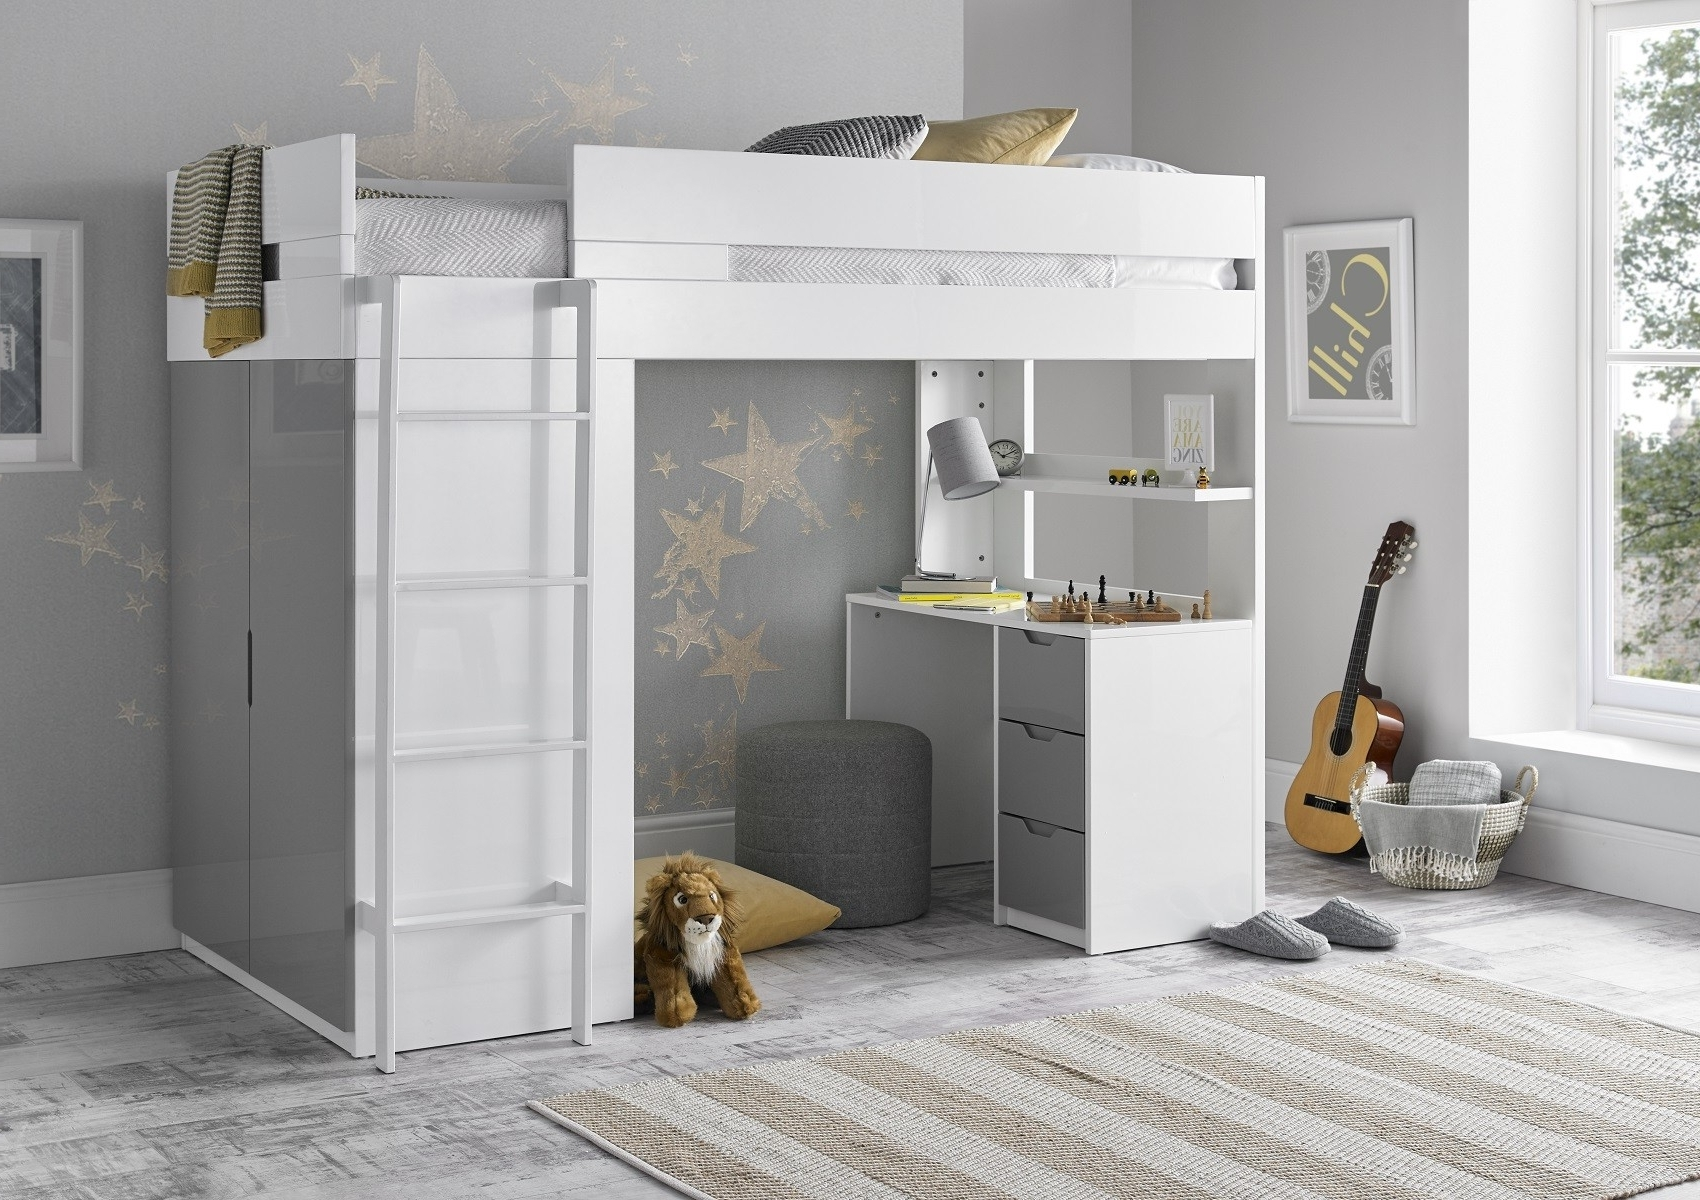 Popular Double Rail Childrens Wardrobes Within Kids Room : Grey Color Bed For Kids High Sleeper Bed For Kids With (View 15 of 15)